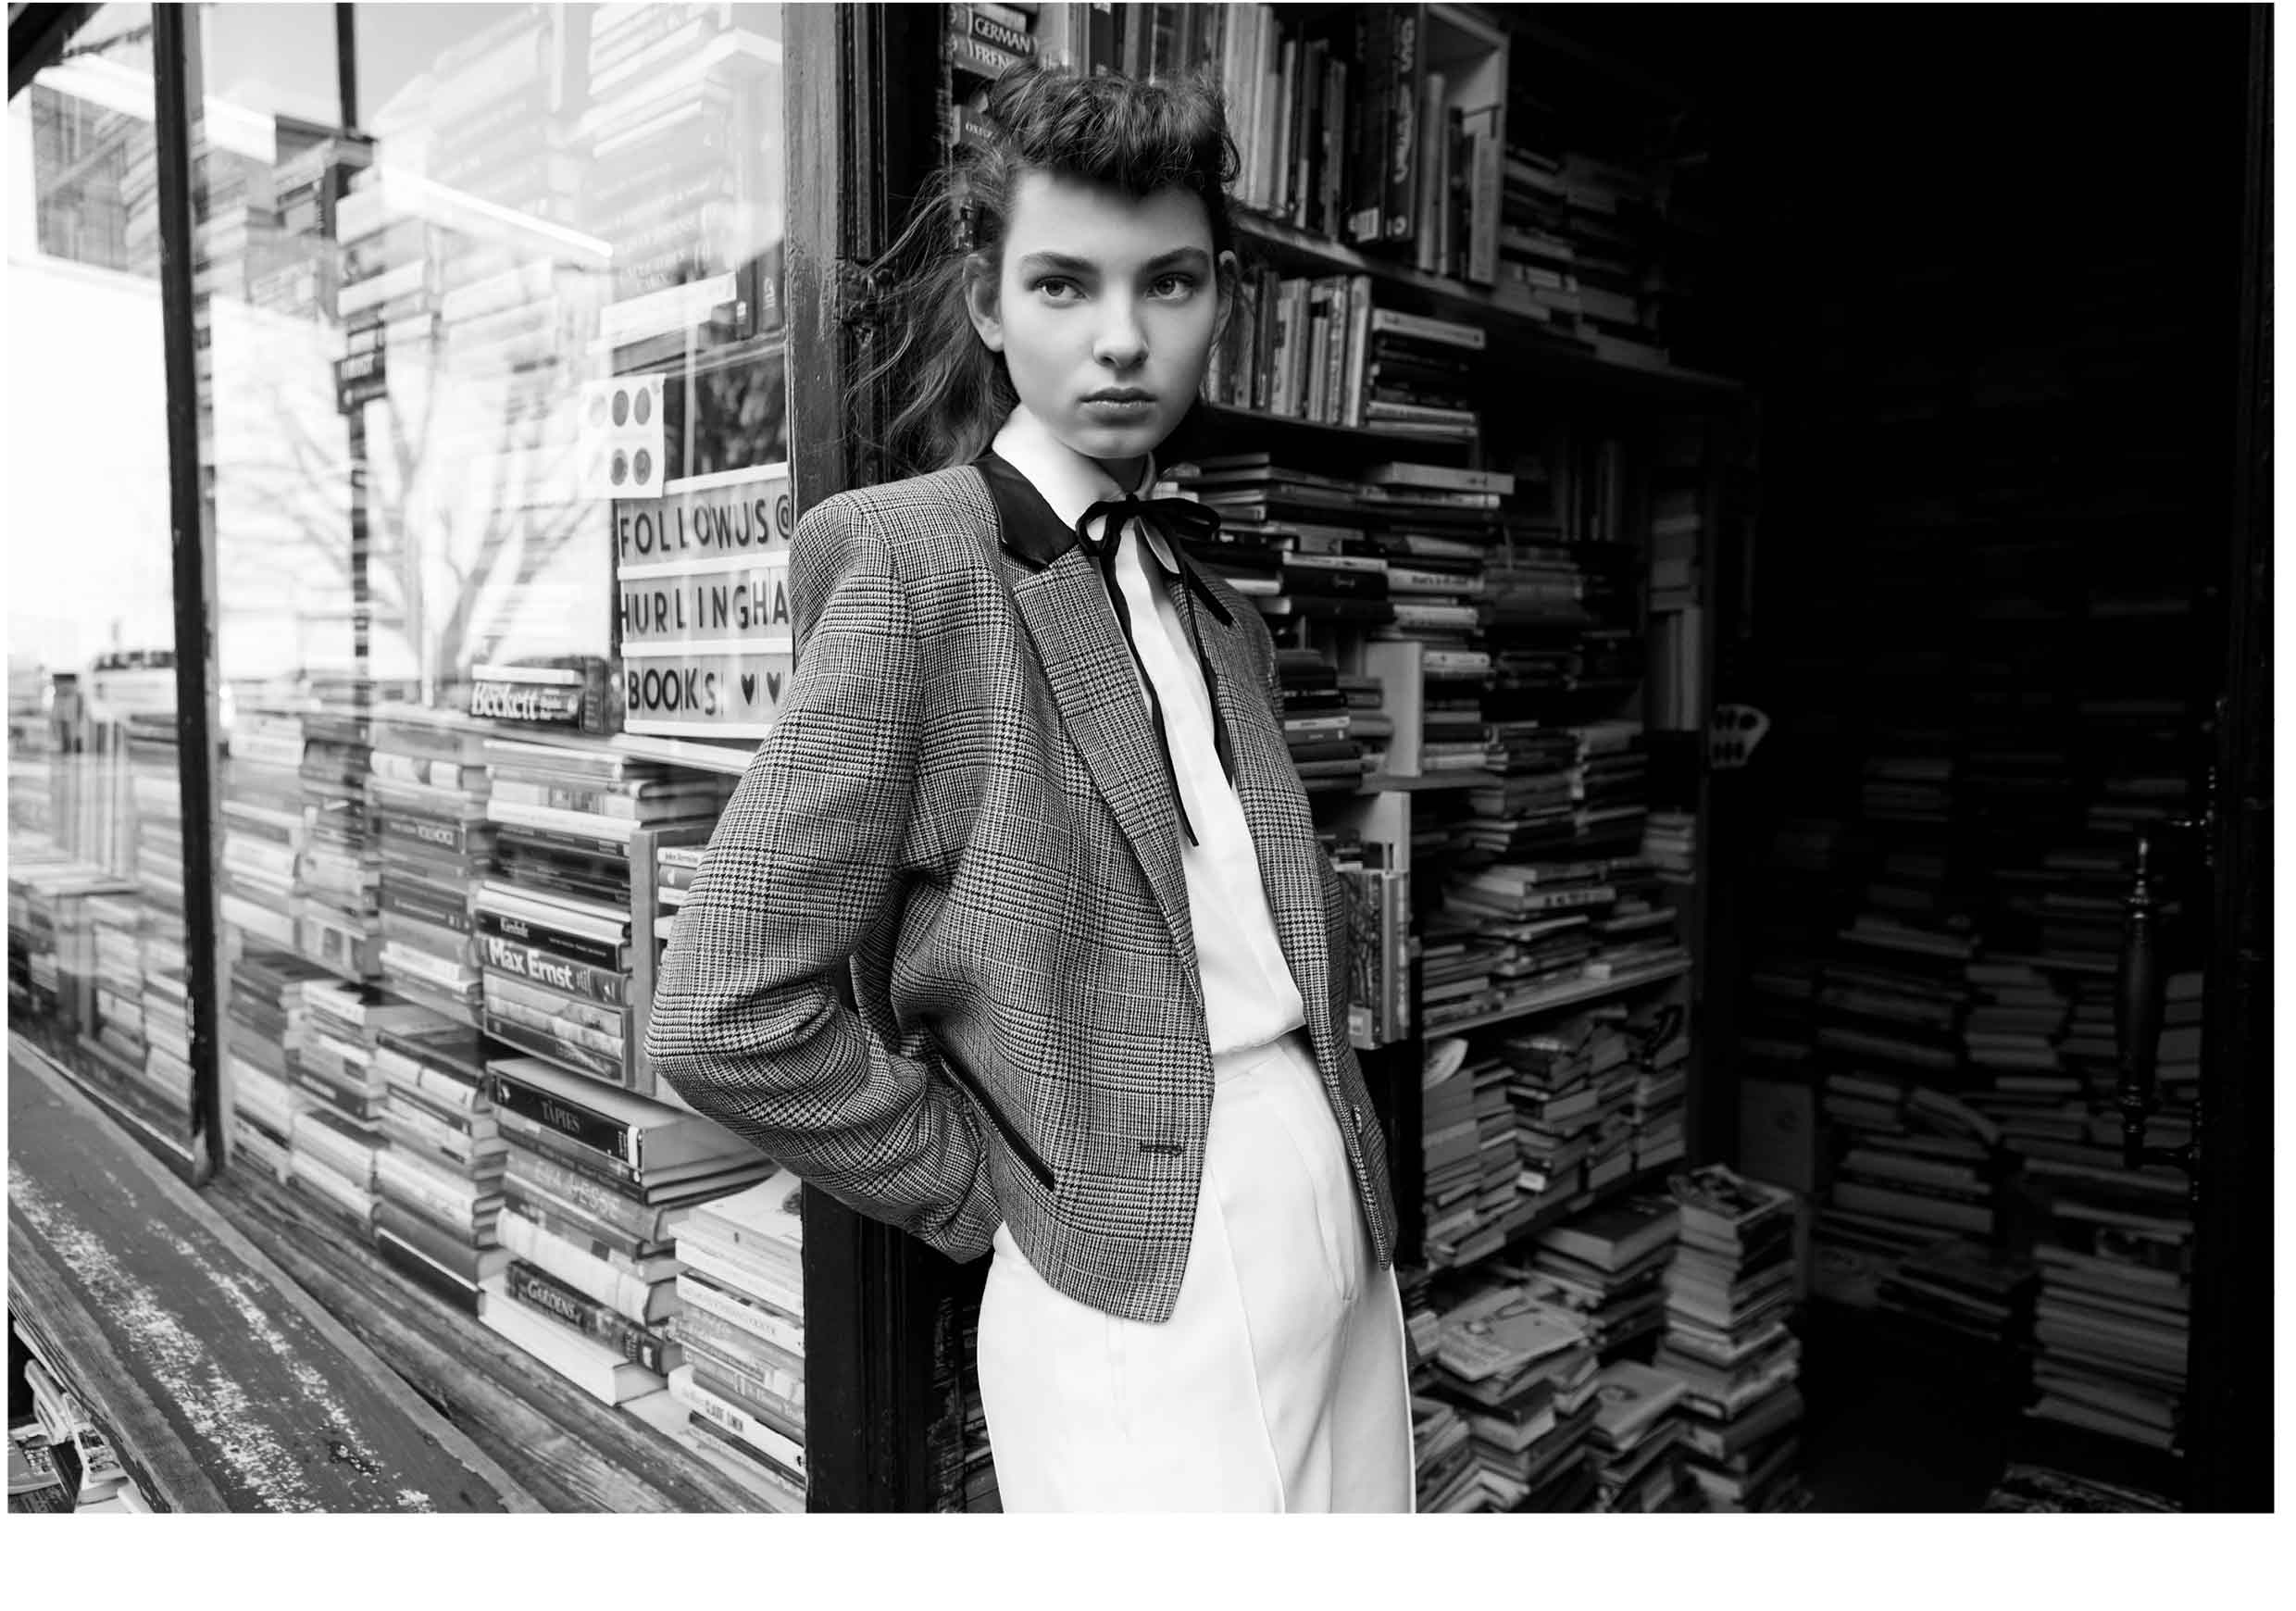 Teddy Boy Fashion Story - Make Magazine - Model Zhenya Migovych I Greg Sorensen I Fashion & Beauty Photographer I NYC